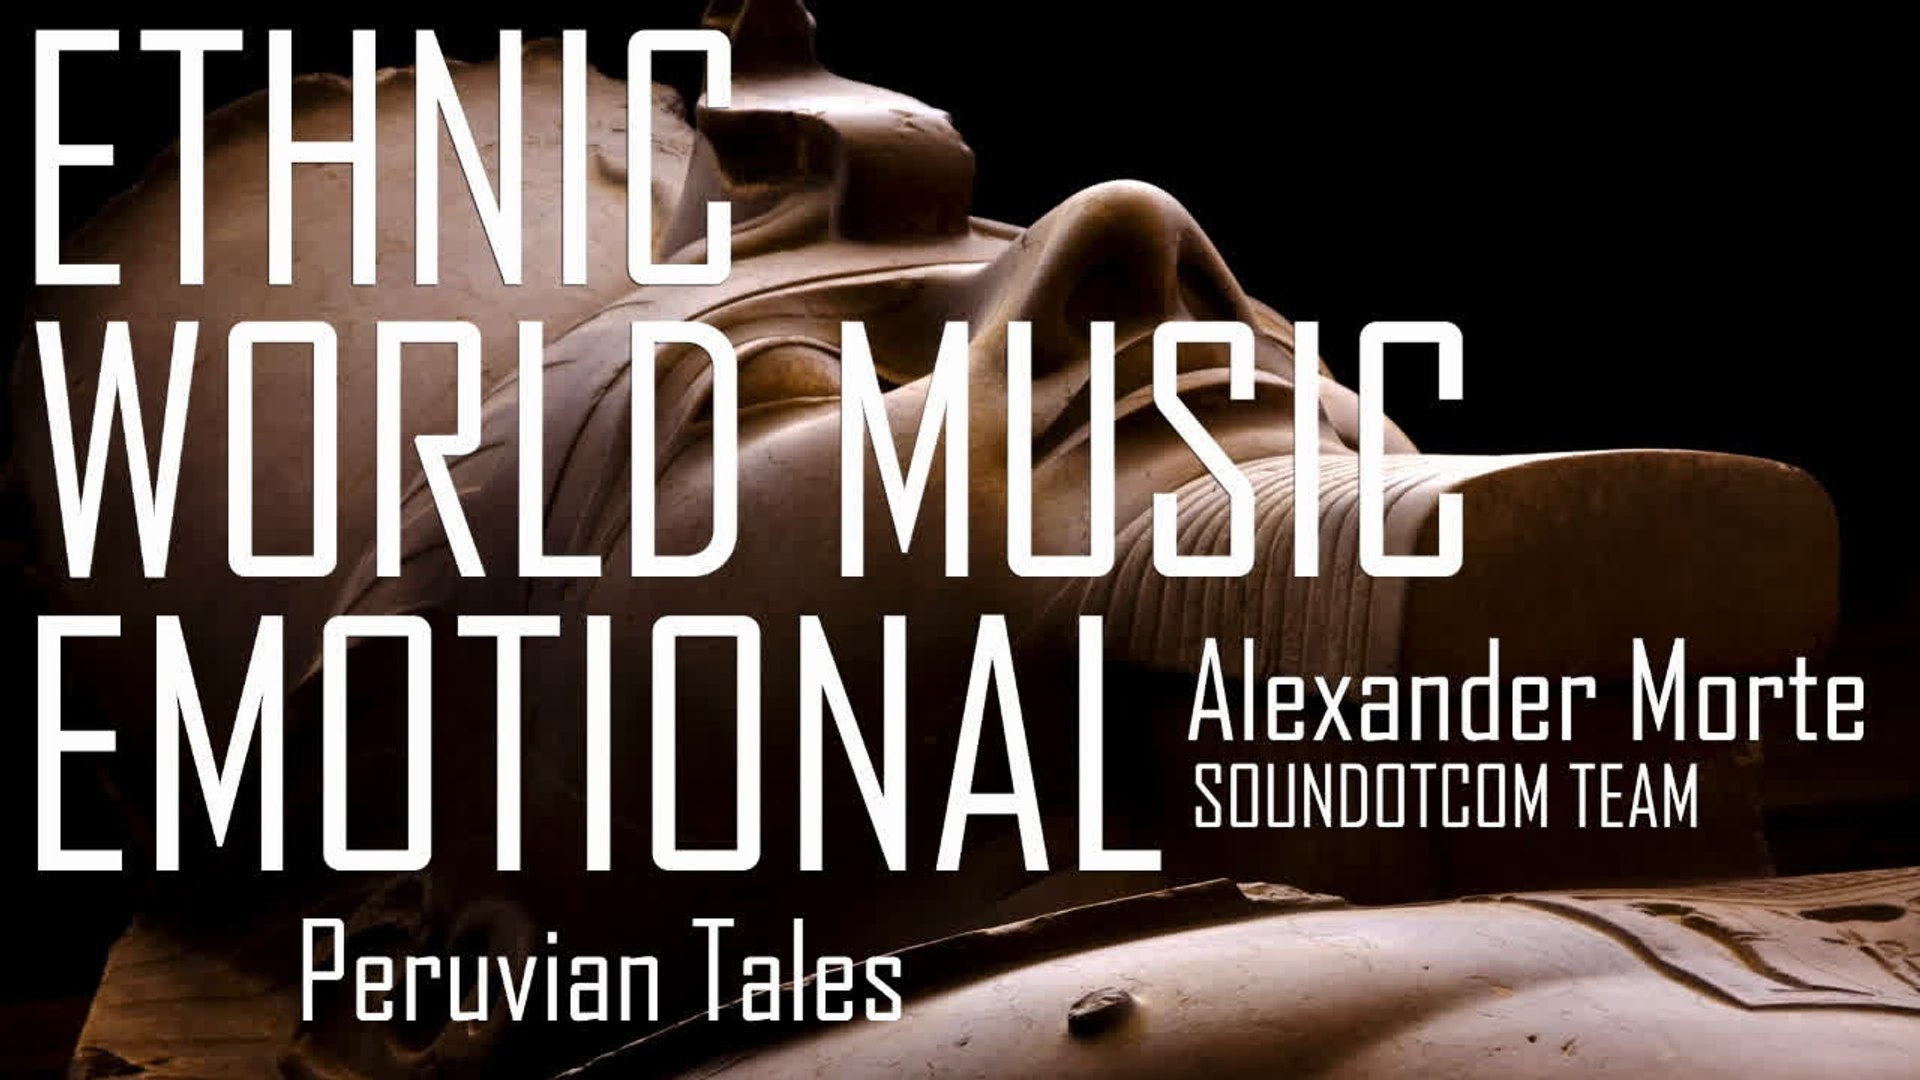 Royalty Free Music DOWNLOAD - World Music Ethnic Documentary | Peruvian Tales